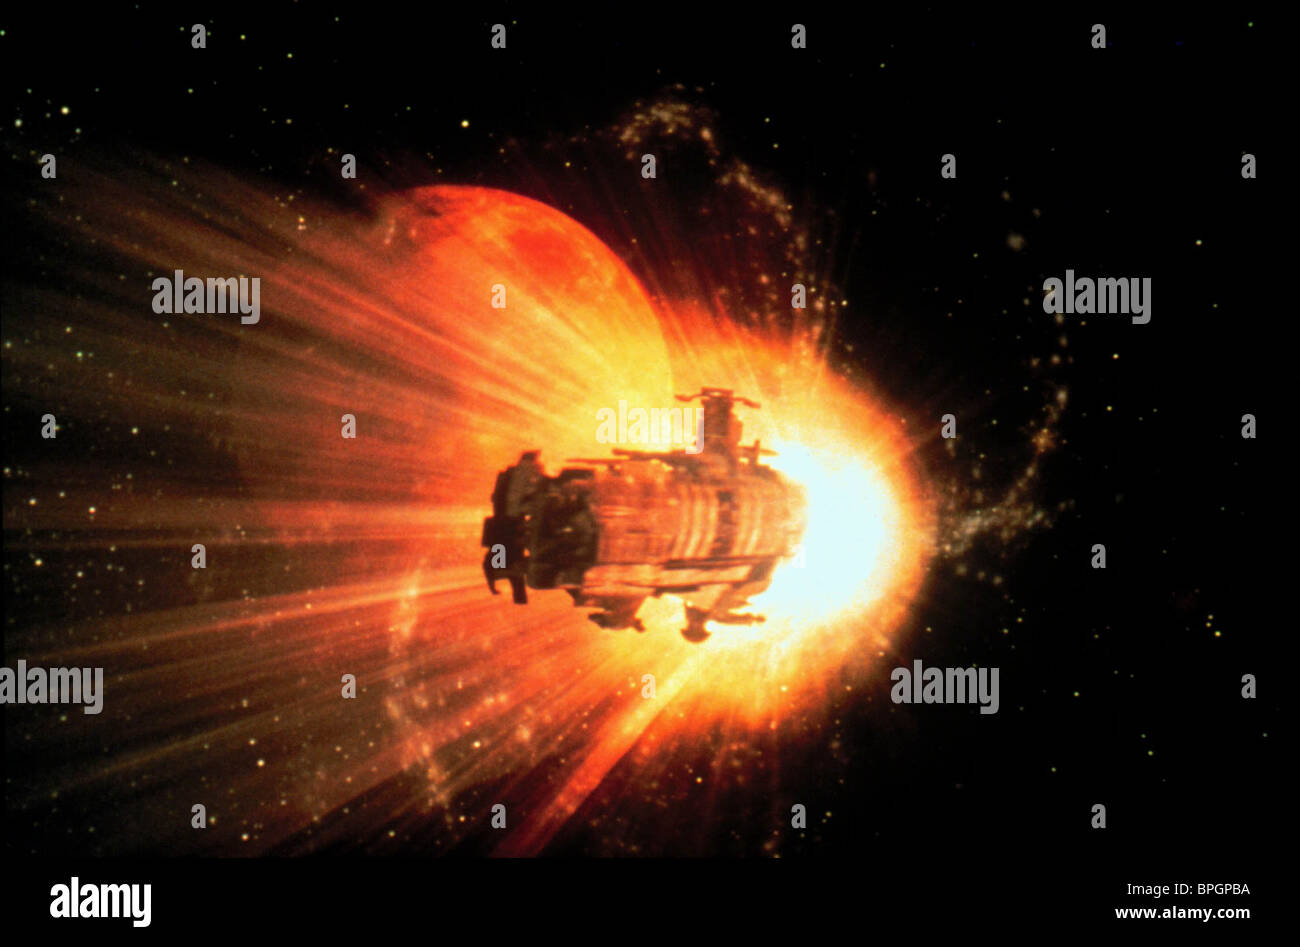 SPACESHIP SCENE WING COMMANDER (1999) - Stock Image